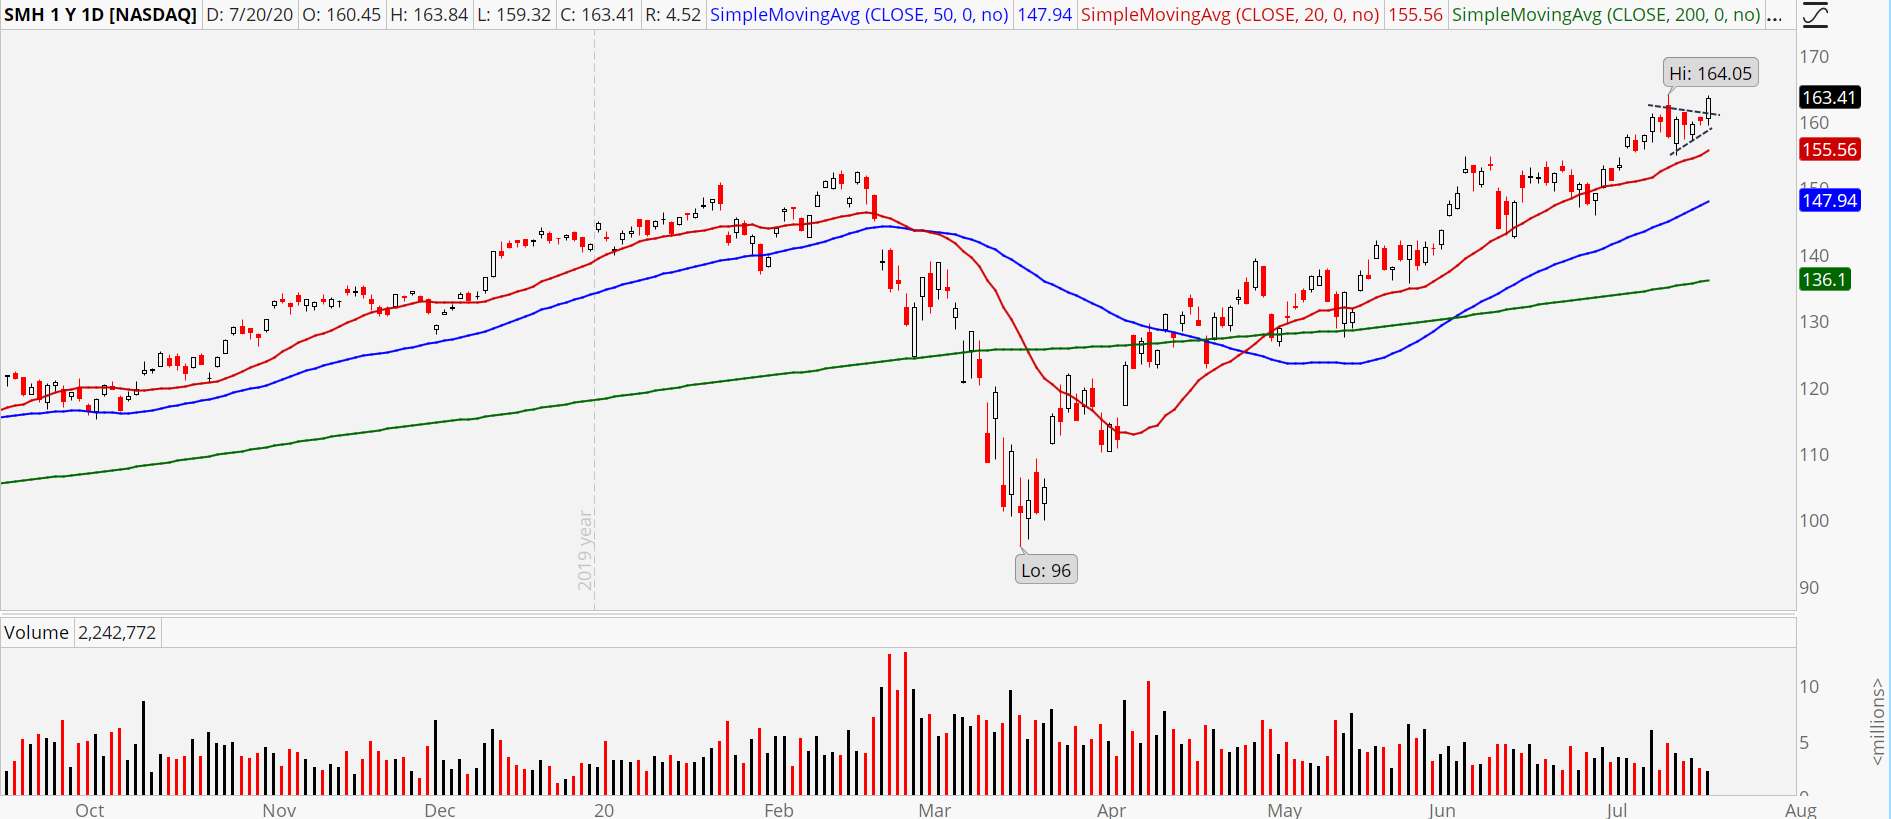 Semiconductor ETF (SMH) chart showing consistent uptrend